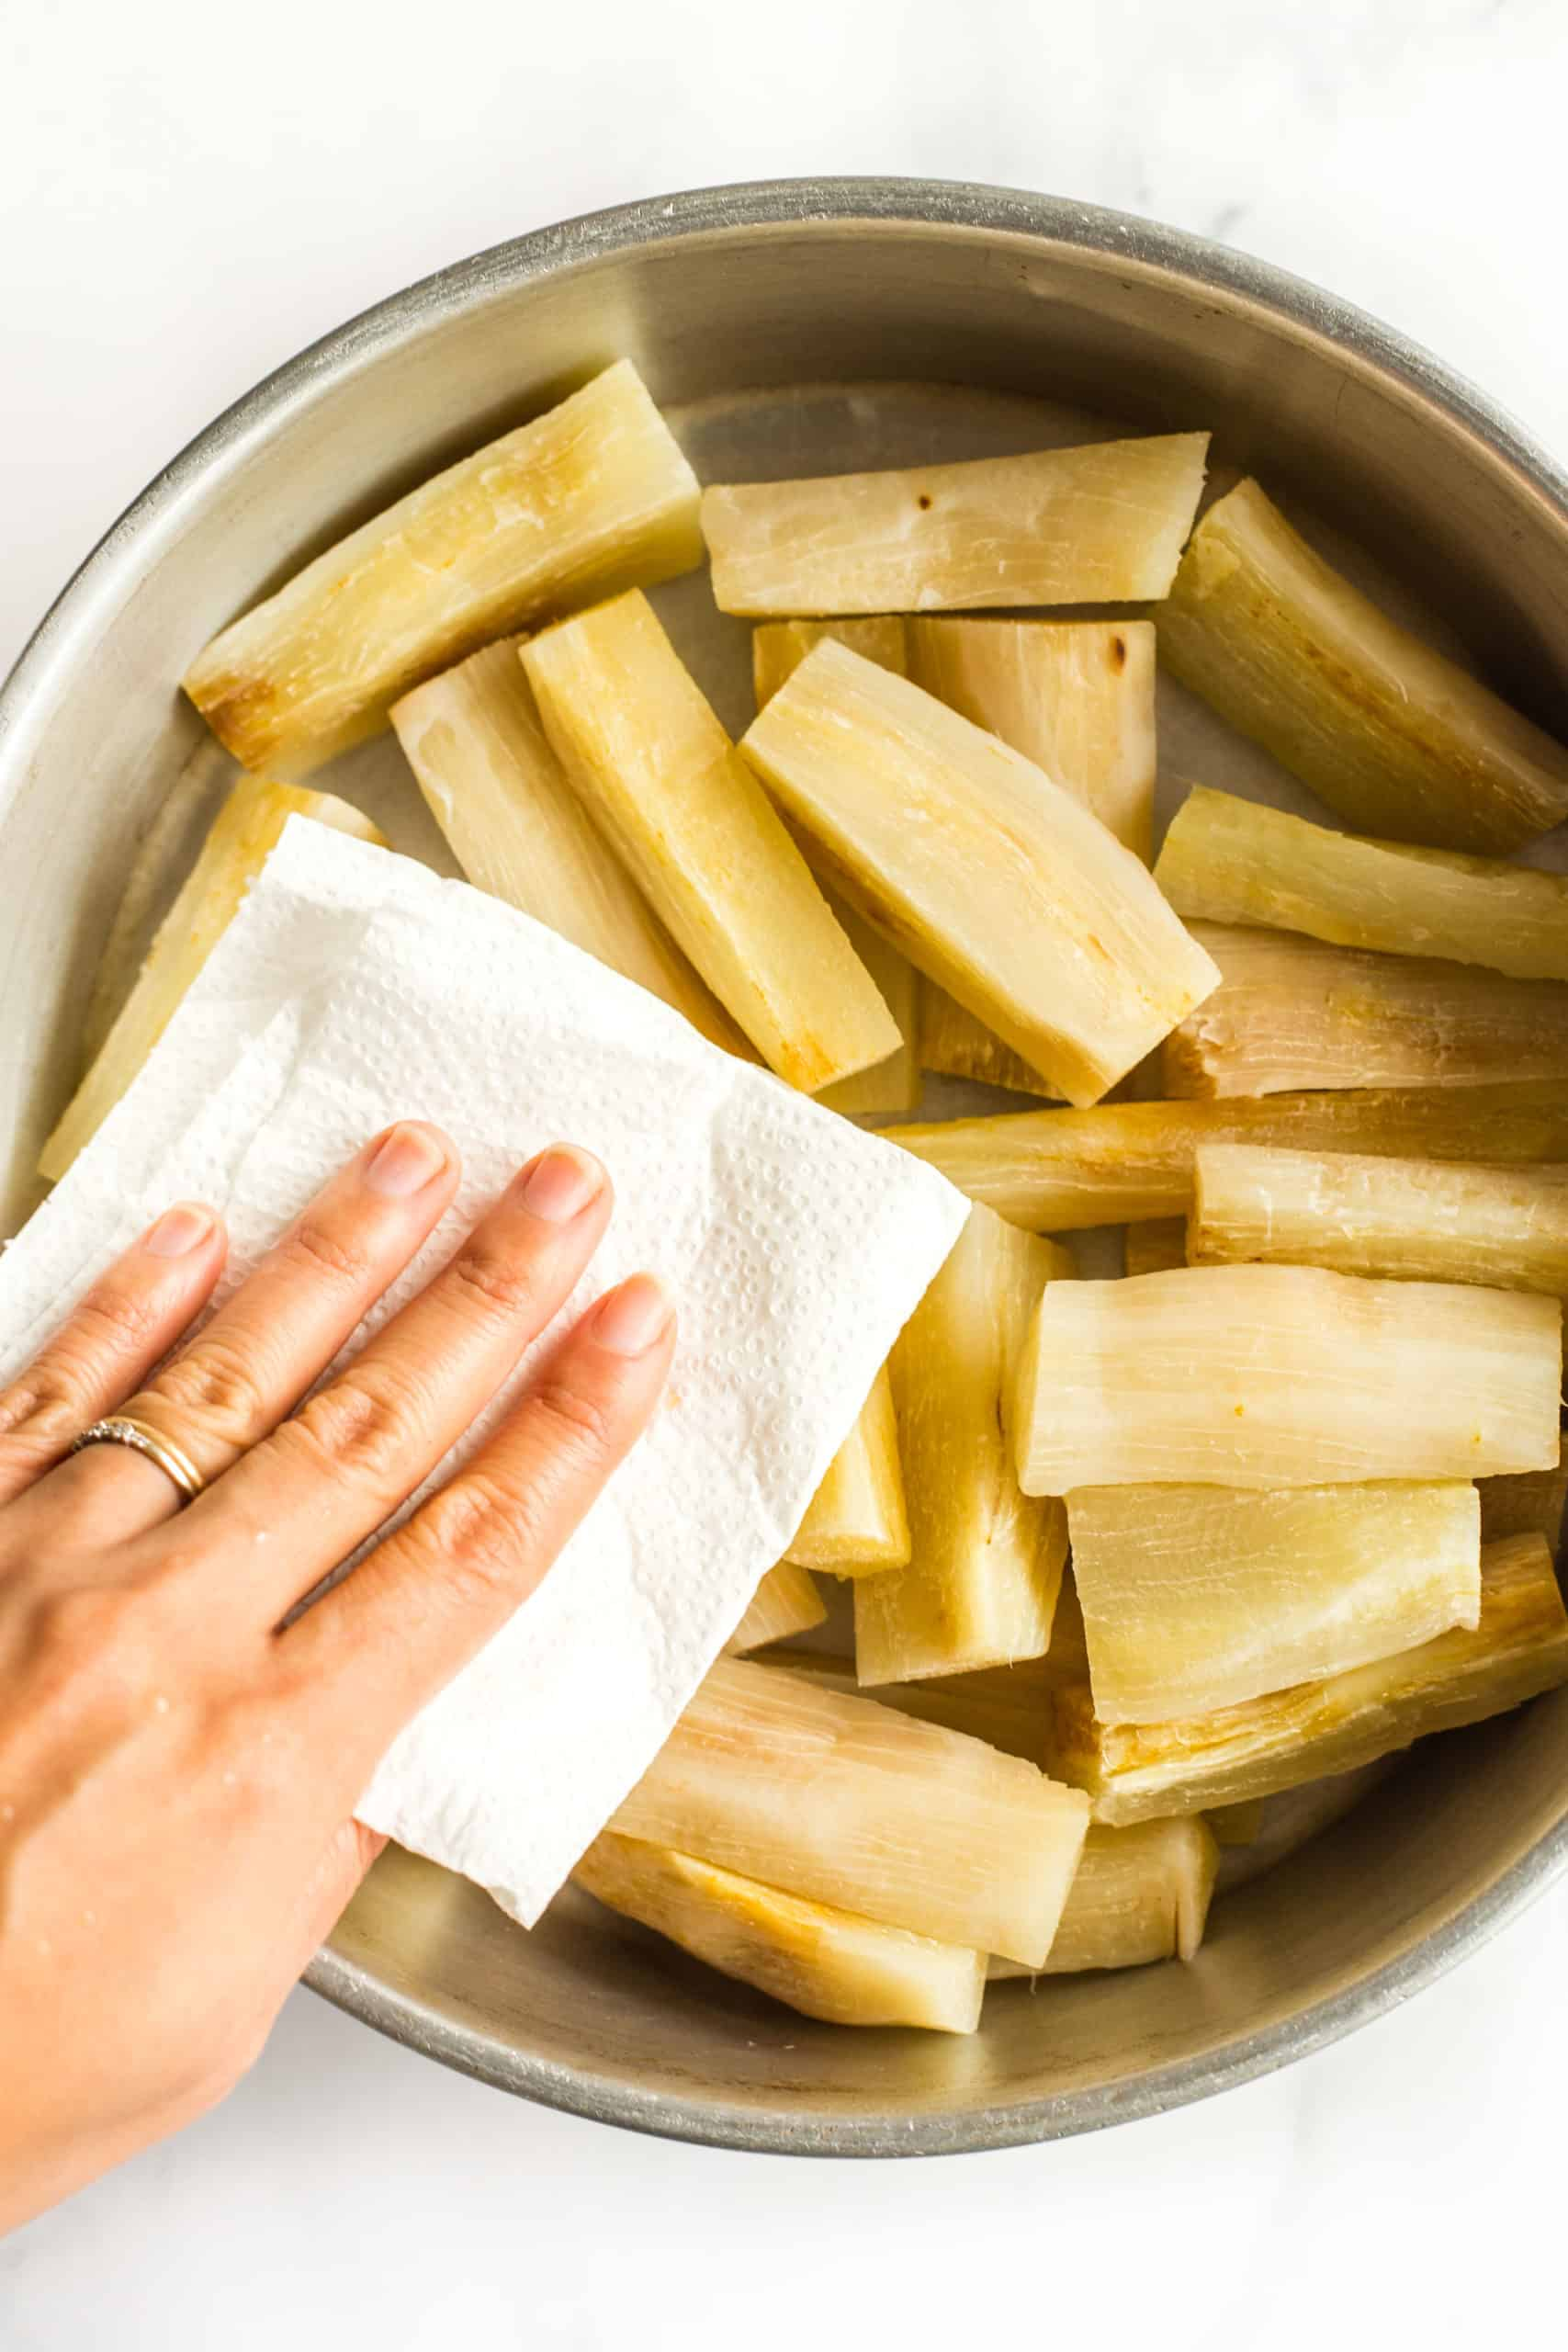 Patting the yuca wedges dry after boiling them in water.